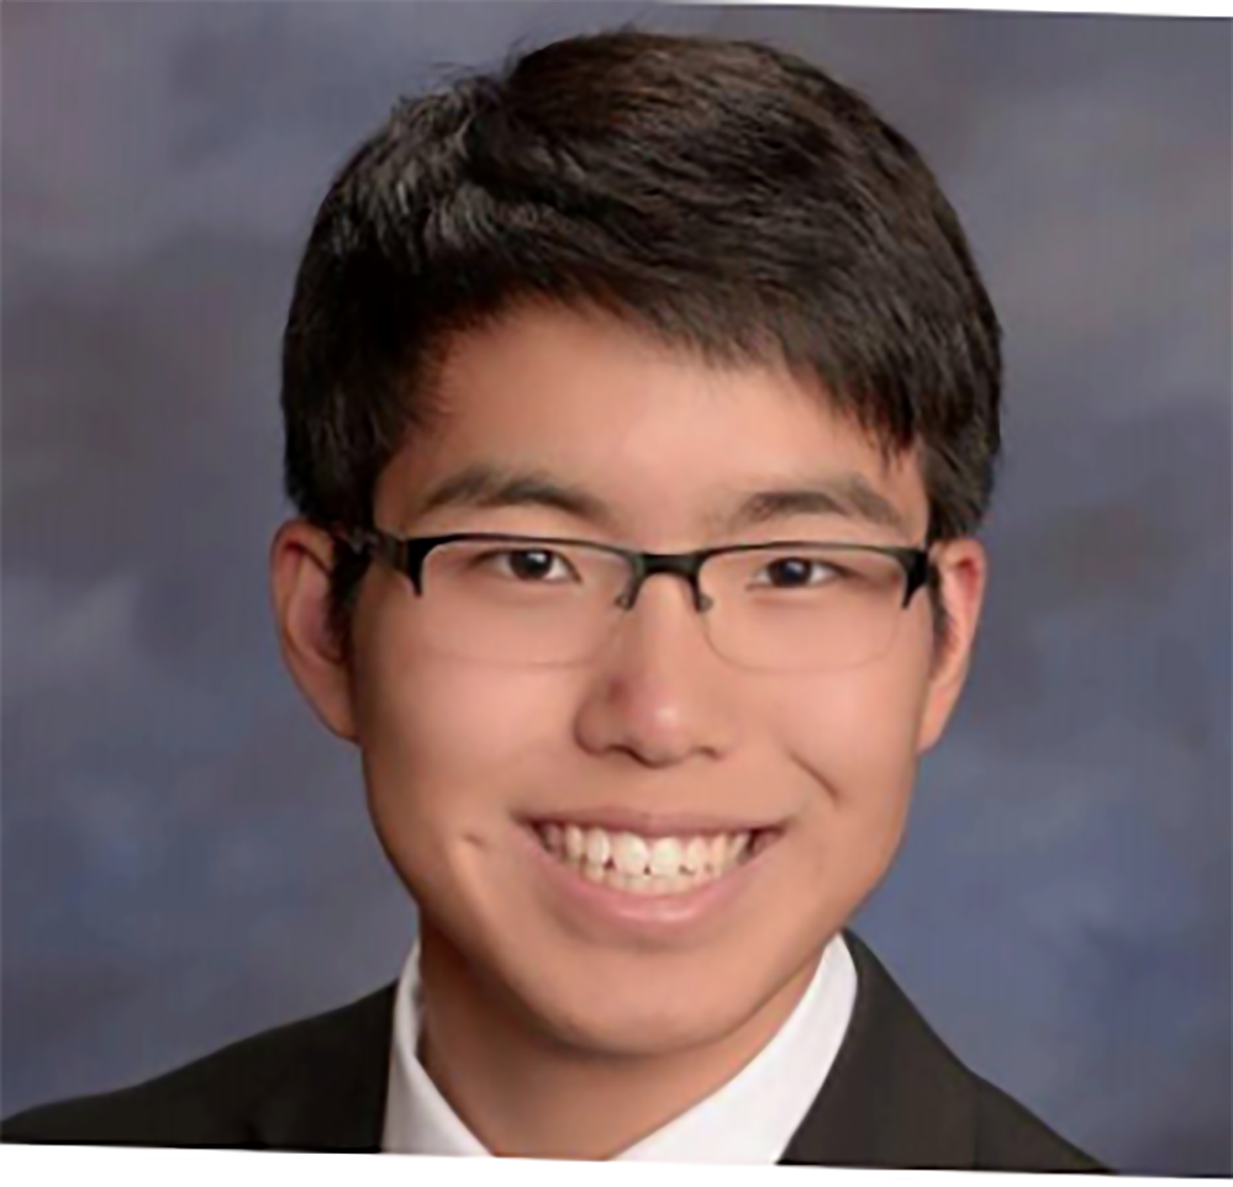 Tong Zhao, Class of 2018, is currently studying as an undergraduate at MIT.